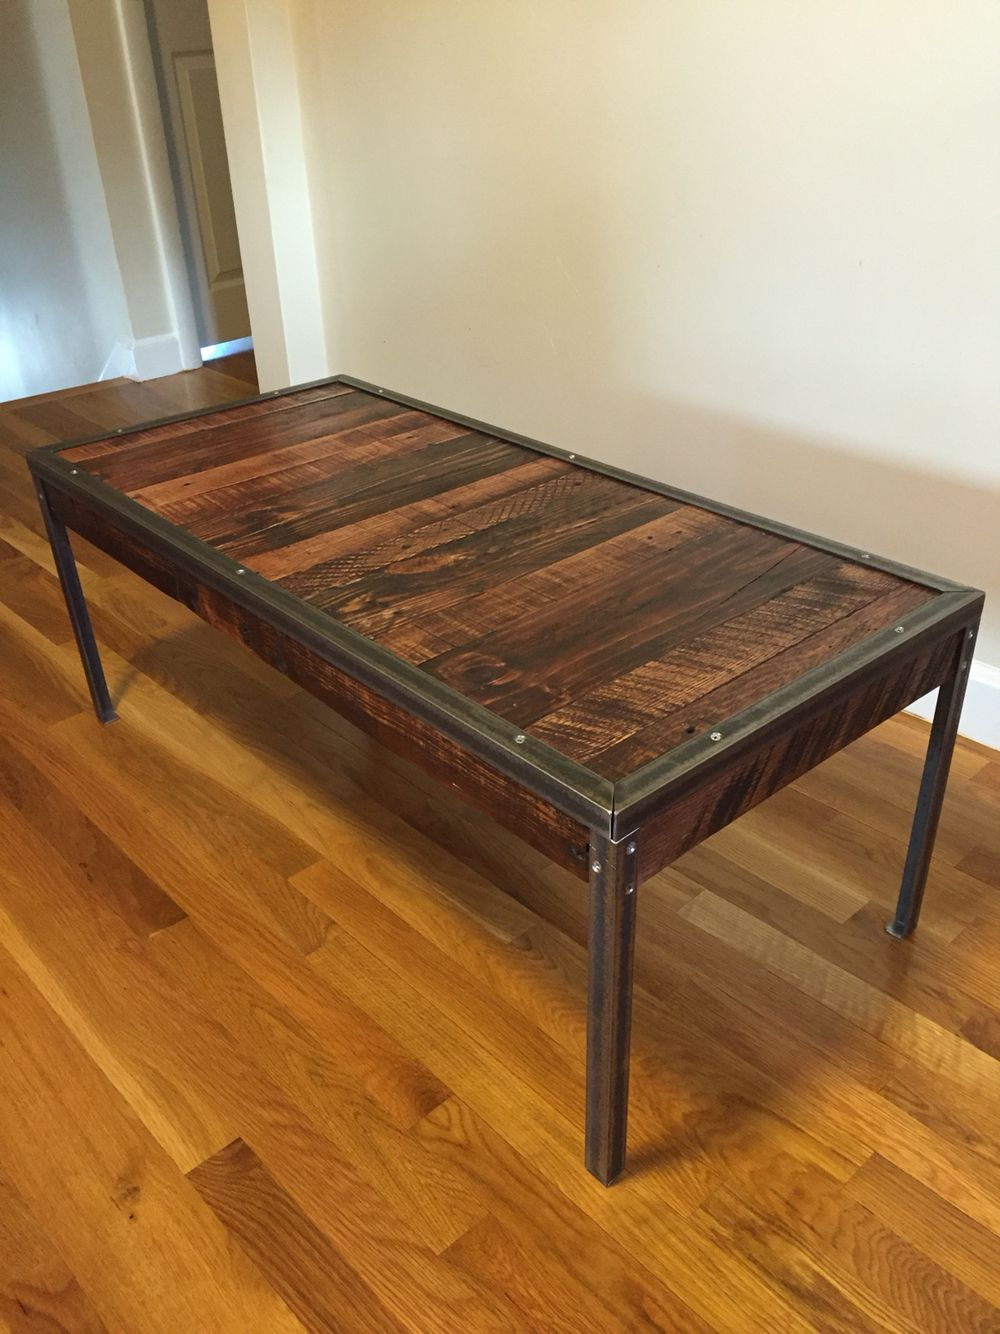 Mixed Pallet Wood With Angle Iron Coffee Table. Total Cost $15.00 For The  Iron!